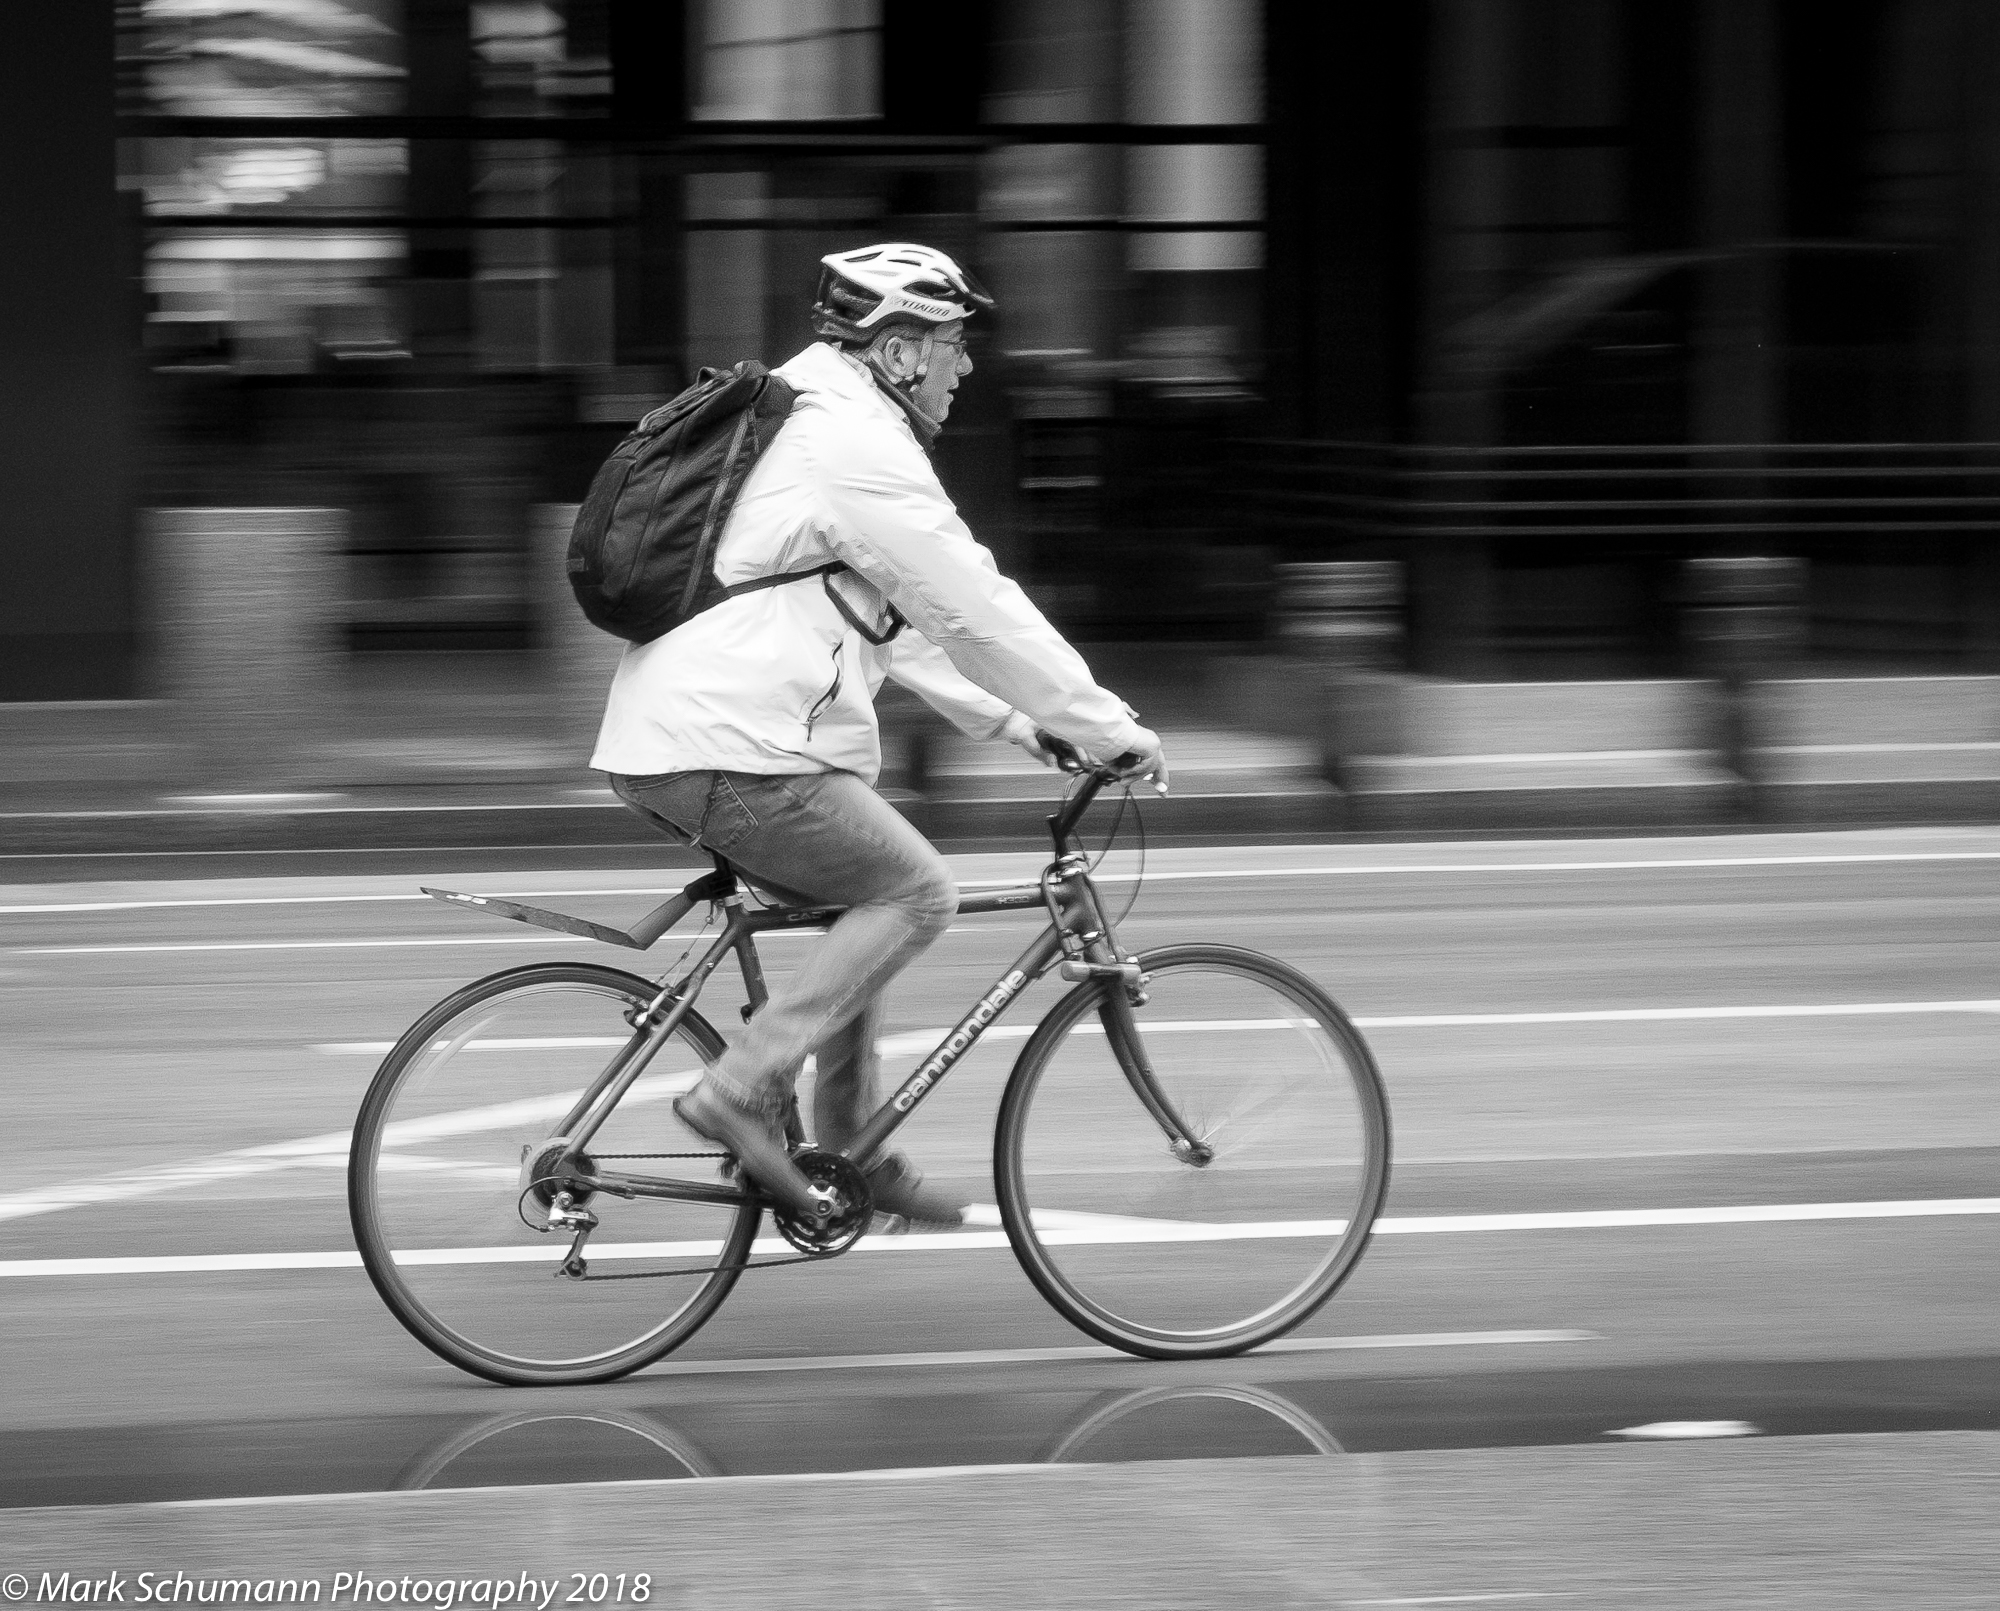 Street Photography_Chicago_Cycle Faster_113018.jpg